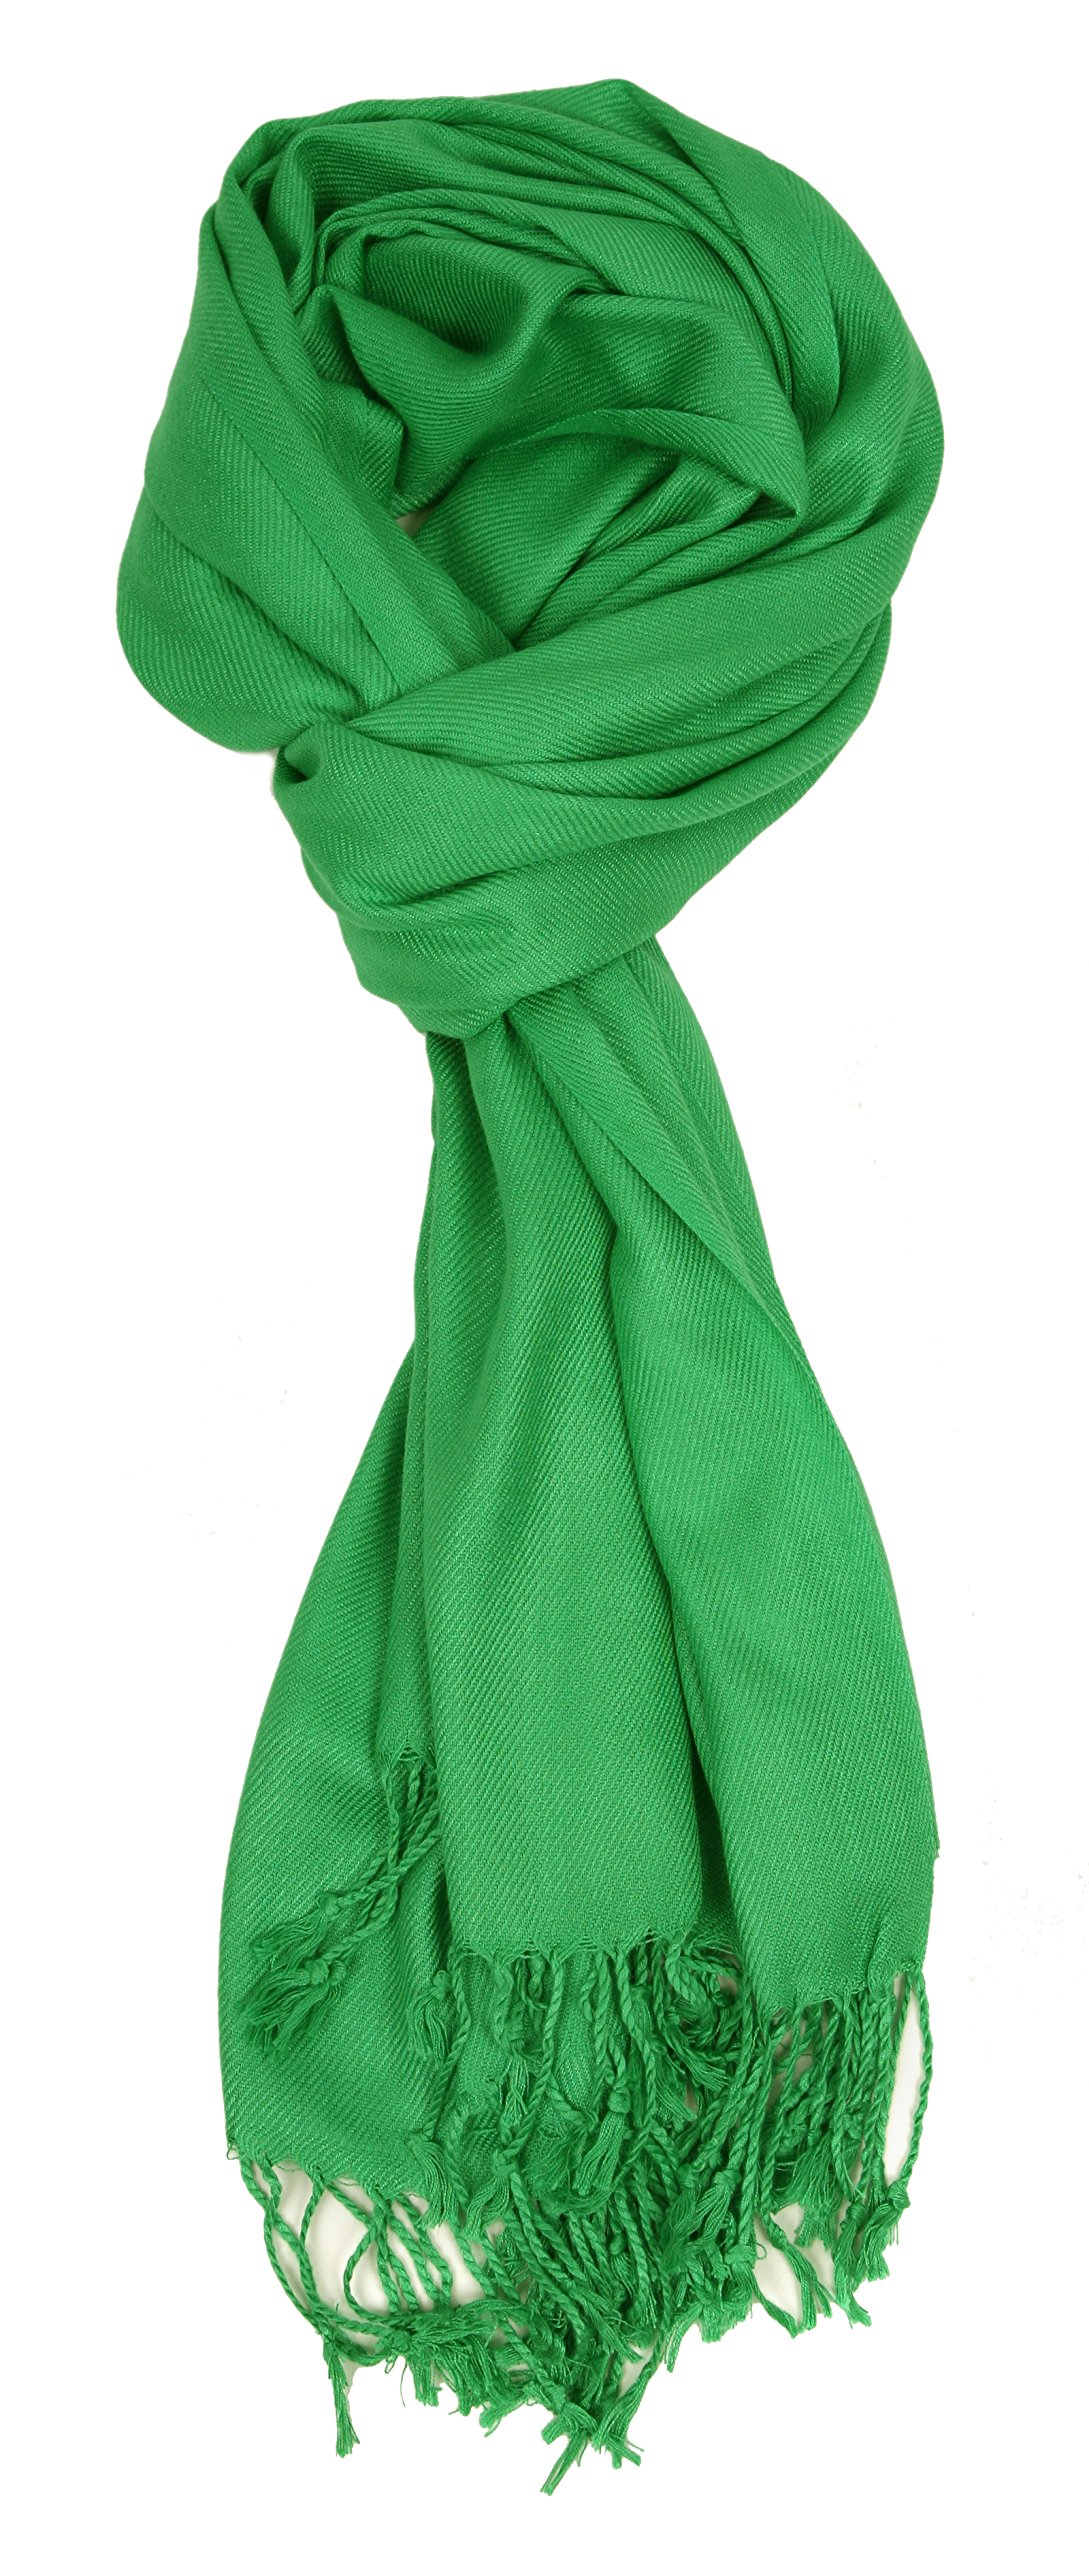 Love Lakeside-Large, Soft, Silky Pashmina Shawl, Wrap, Scarf in Solid Colors of Kelly Green